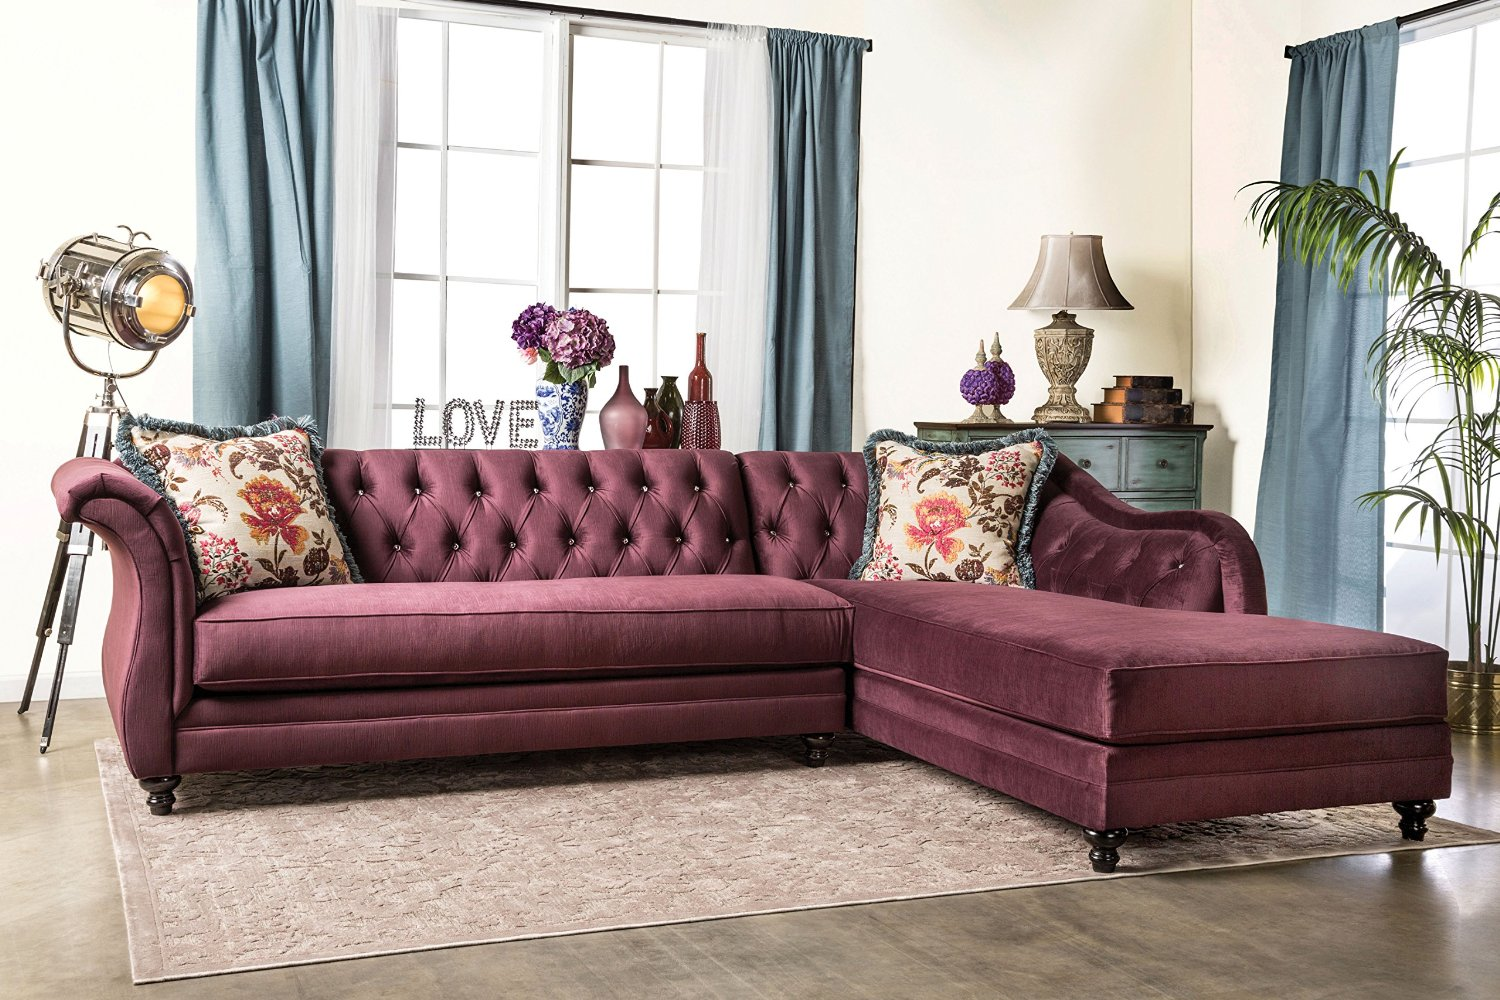 Furniture of America 2 Piece Corinee Glamorous Sectional Sofa